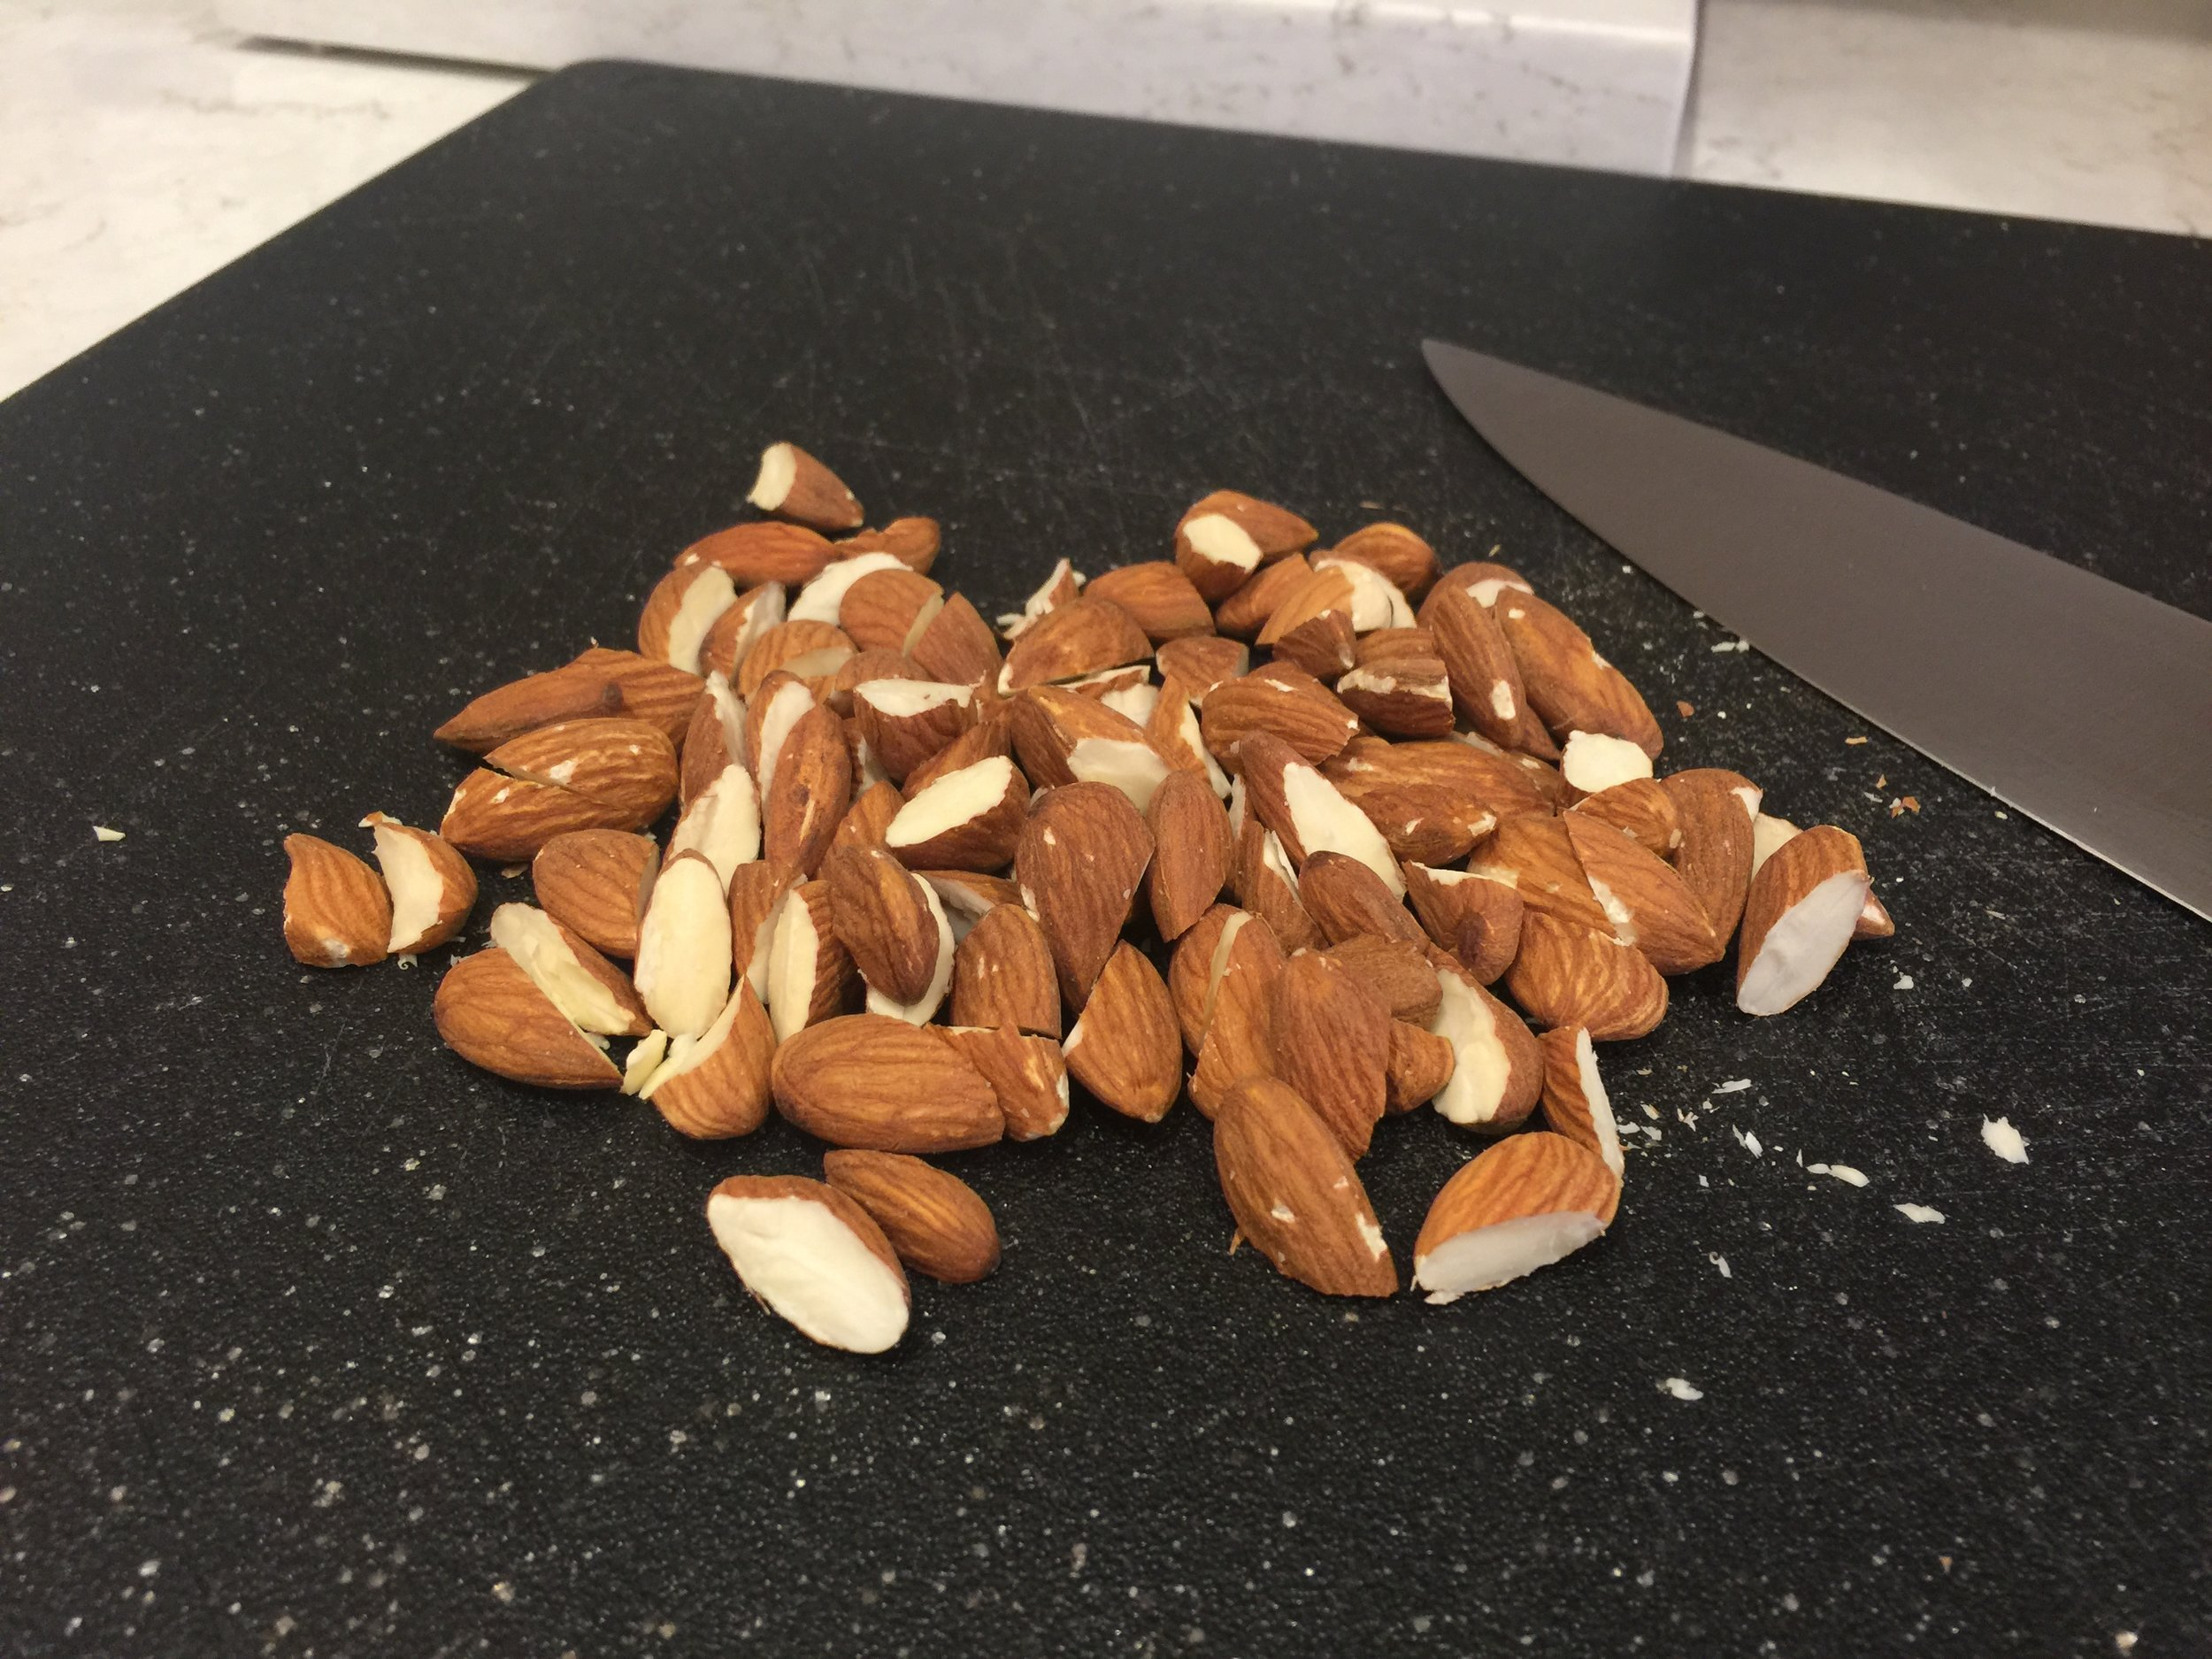 I cut my almonds in half, thinking it would help the bars stay together better. I think it did.